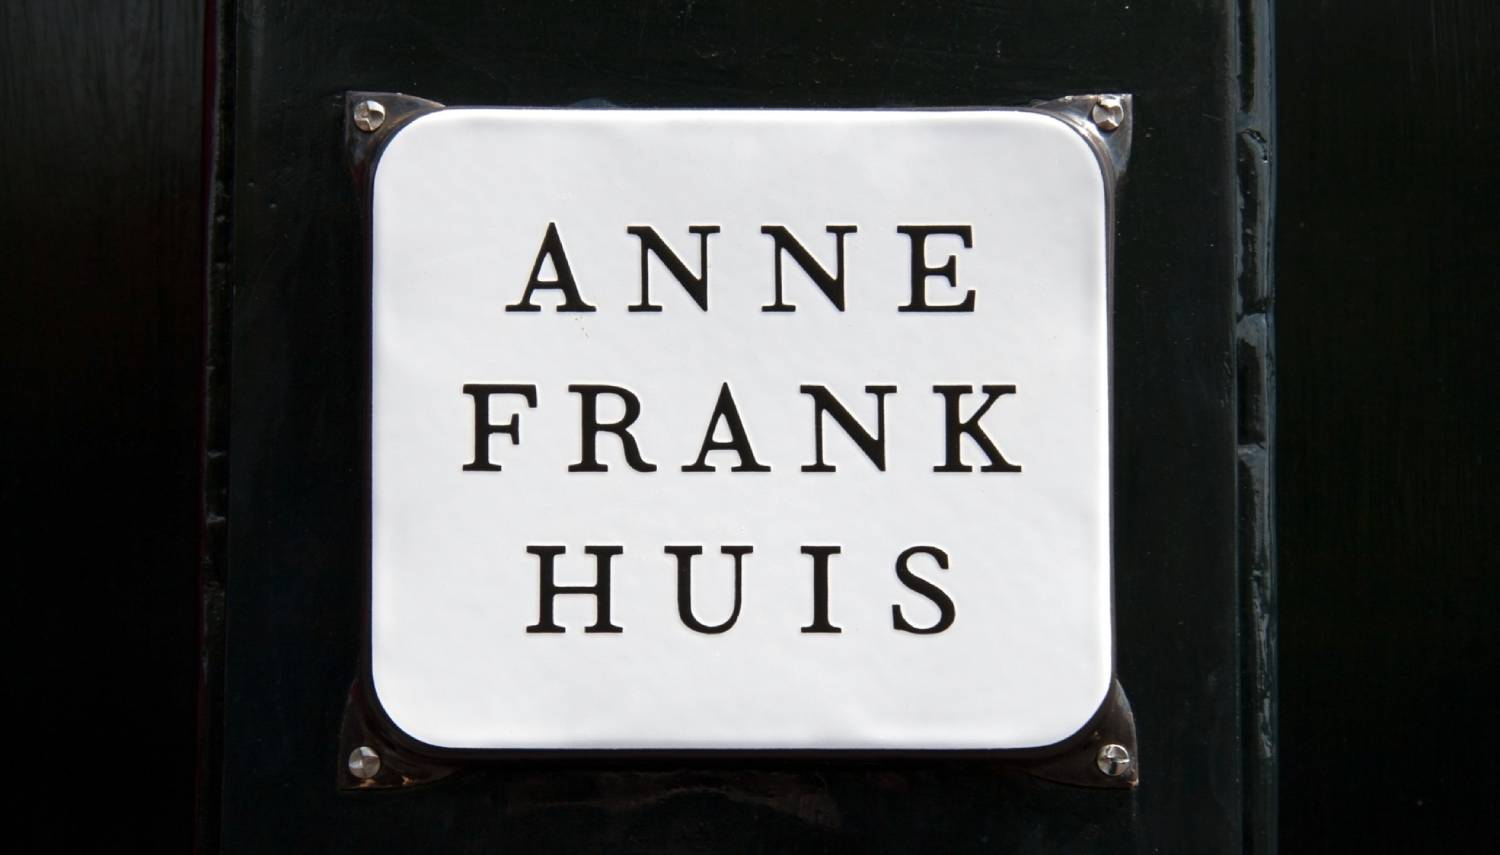 Anne Frank House (Anne Frank Huis) - Things To Do In Amsterdam